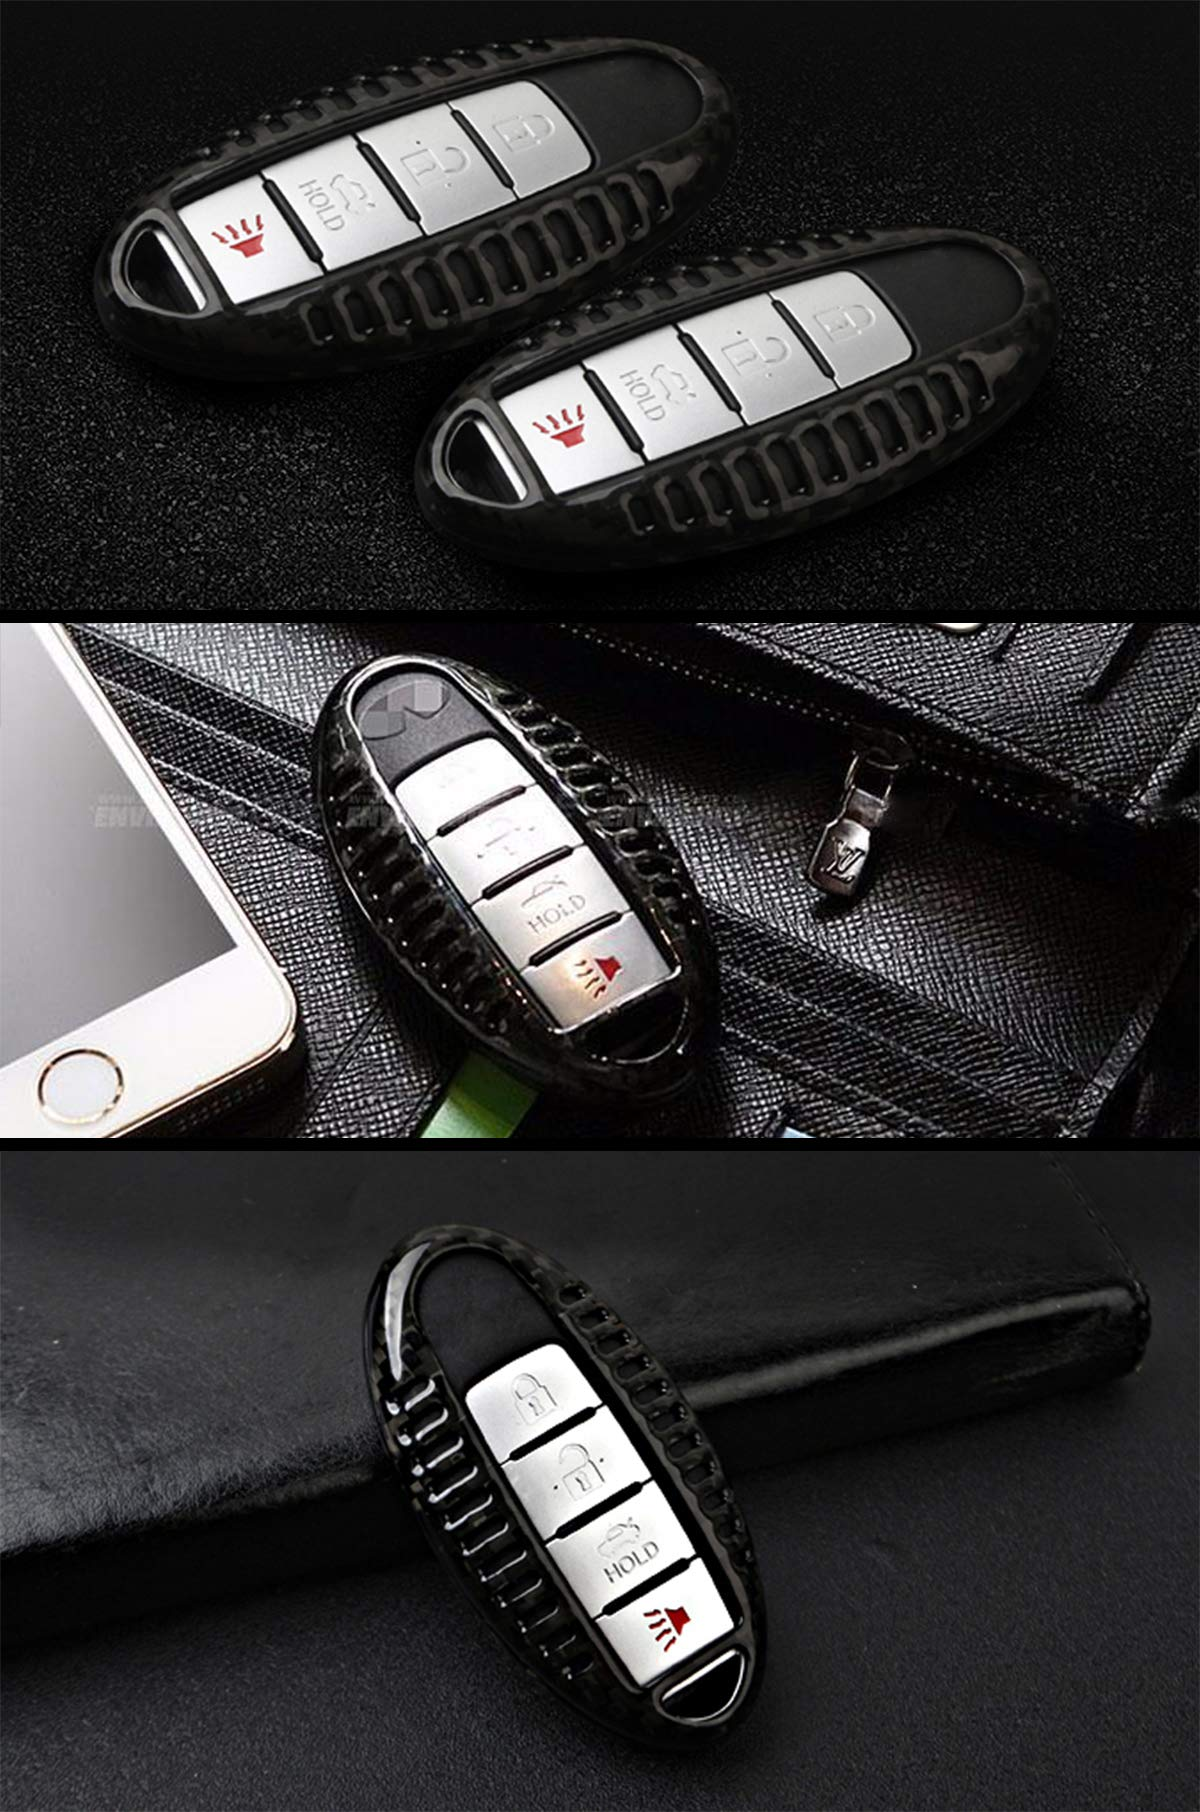 Auto keyless New Black and Red Protecting Bag Silicone Smart Remote Key Case Cover for 4 Buttons Infiniti G Series G37 JX35 Q Series Q50 Q60S Q70L QX EX FX M Smart Key Case Shell Fob